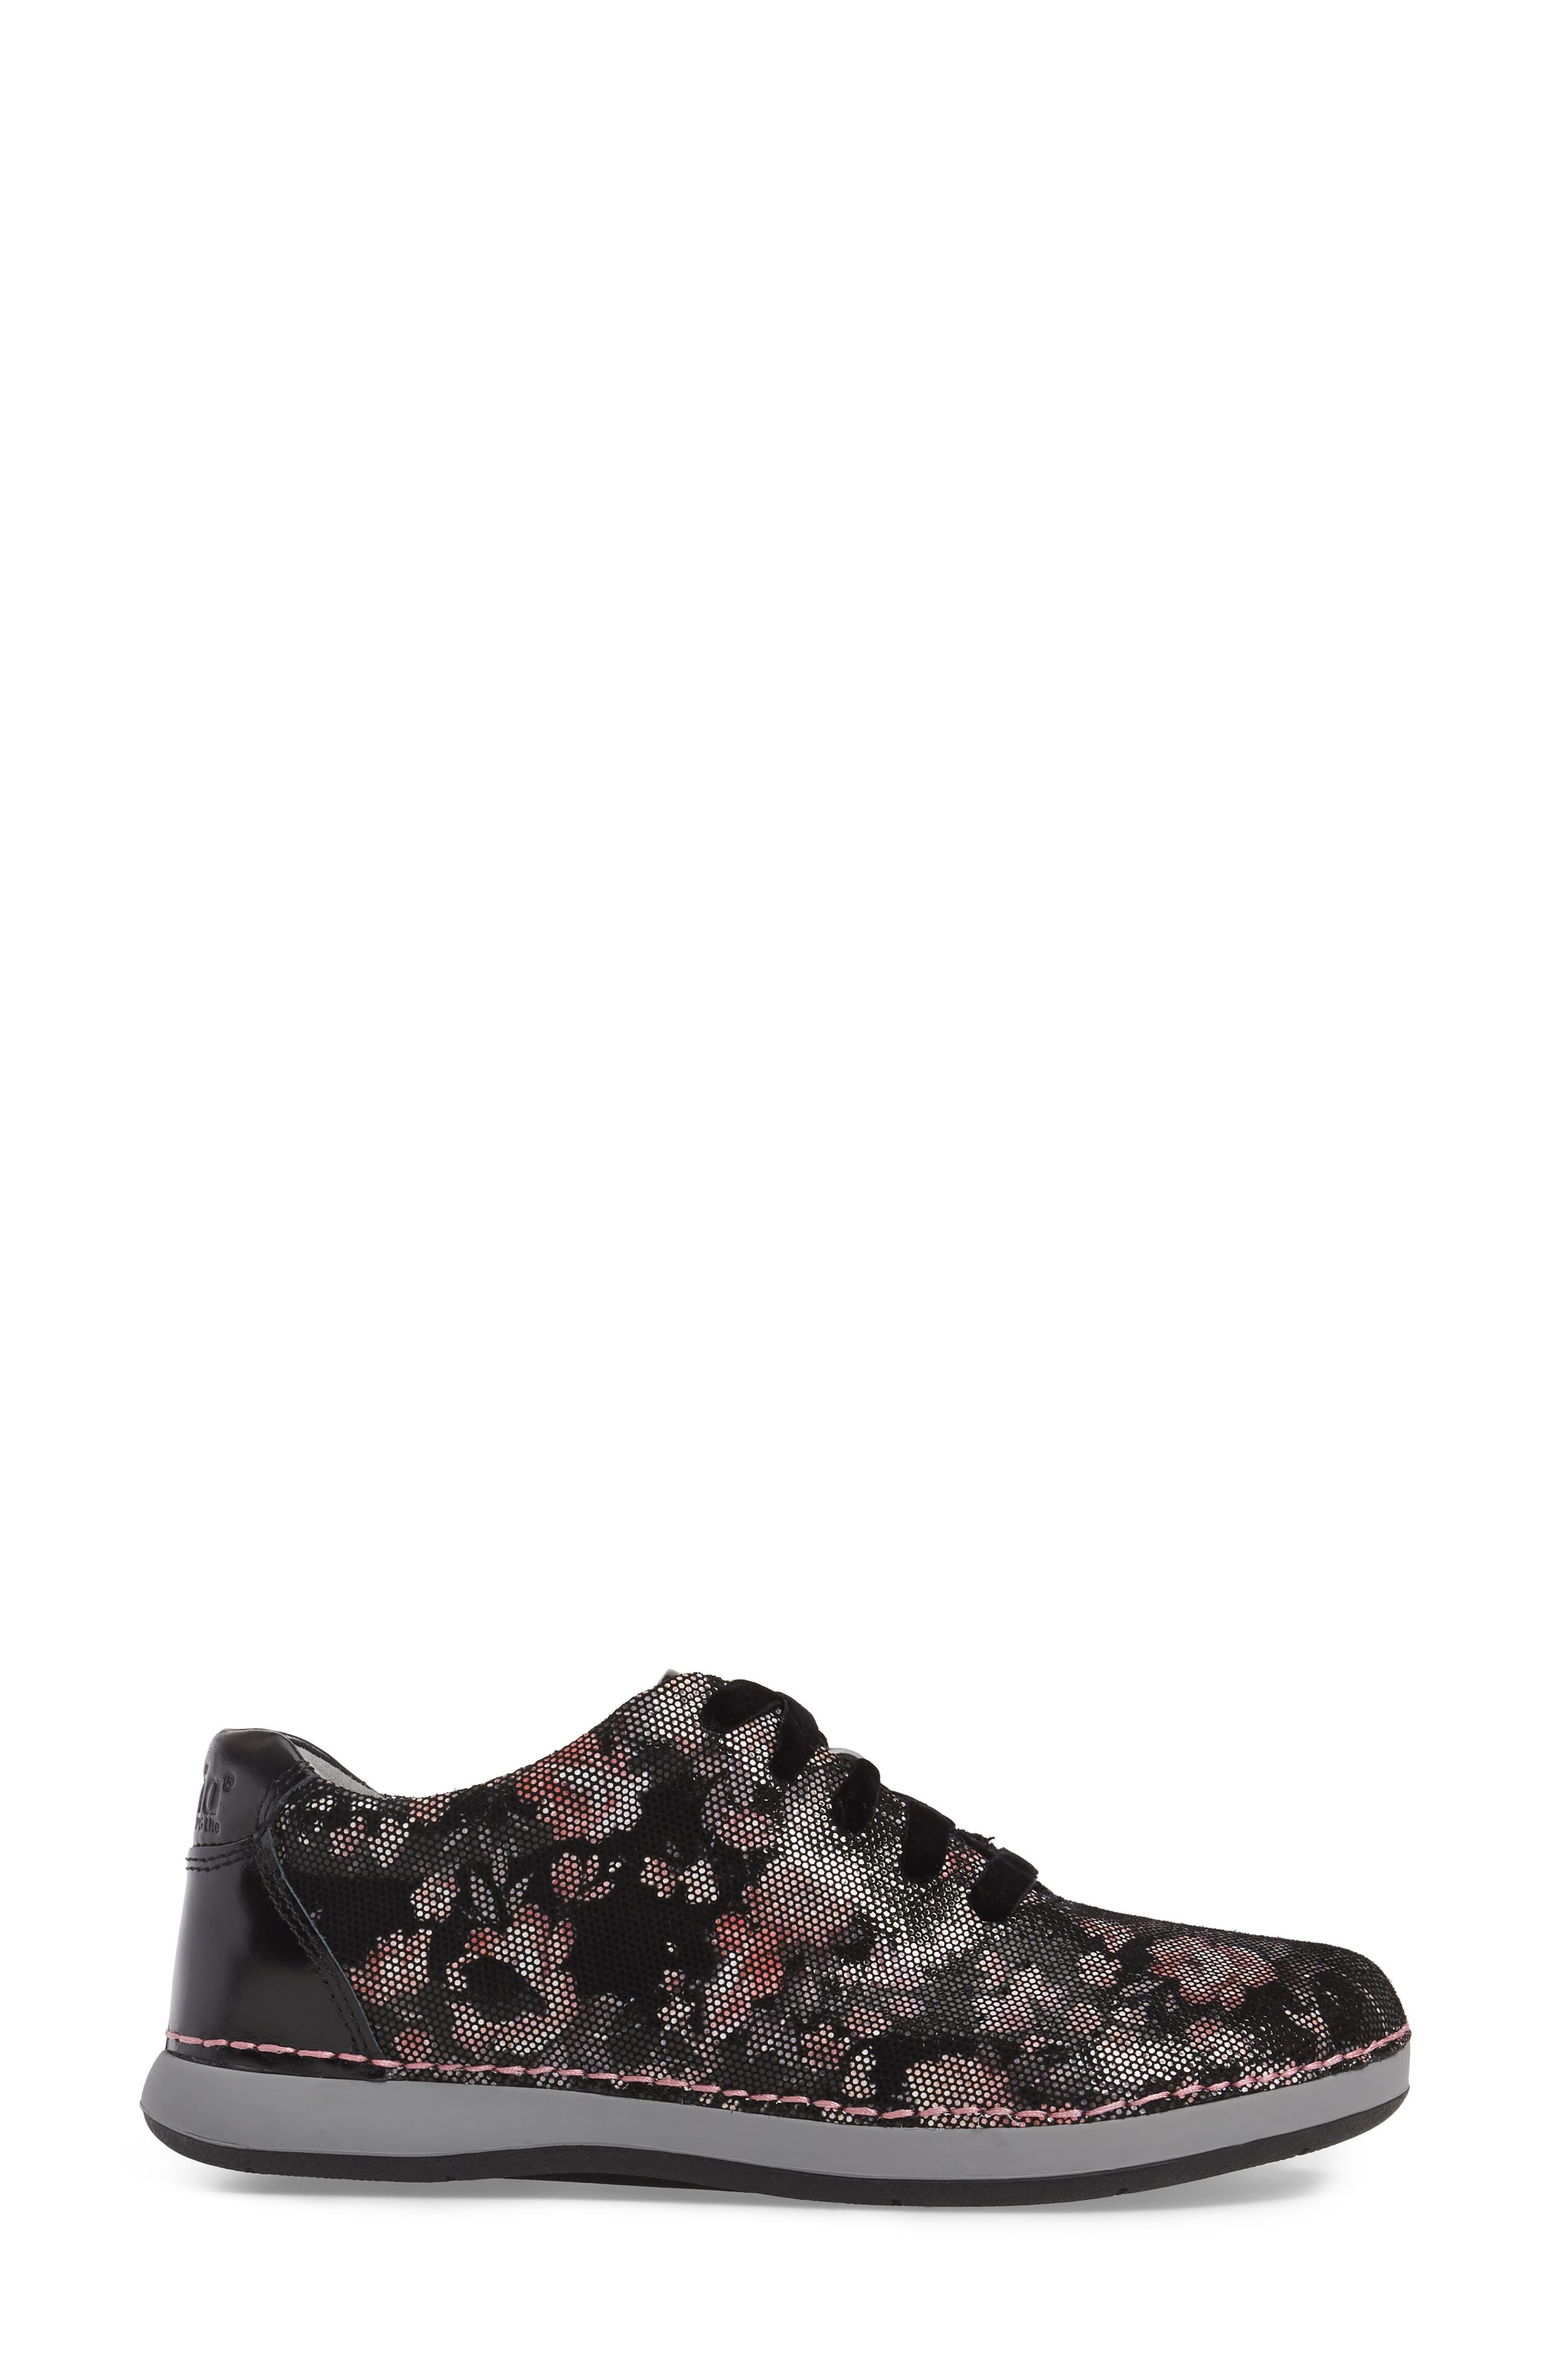 Essence Lace-Up Leather Oxford,                             Alternate thumbnail 3, color,                             001